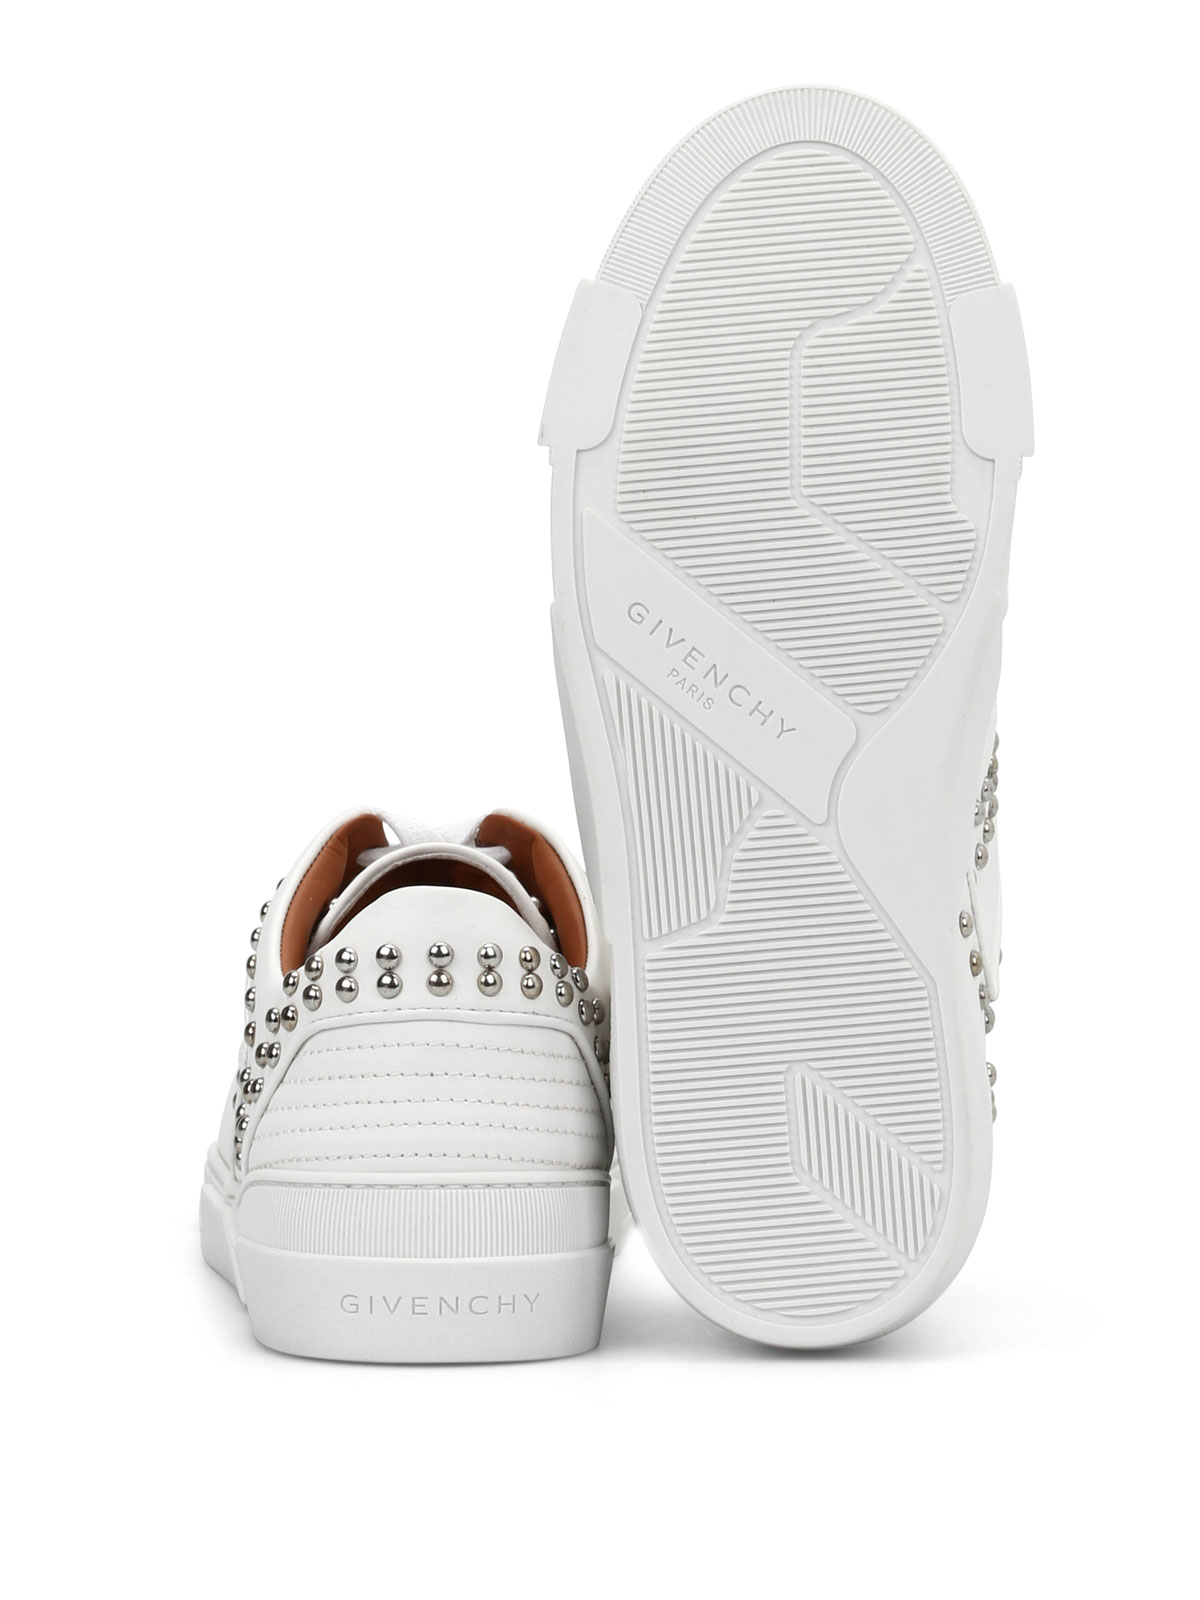 Givenchy - Tyson II studded sneakers - trainers - BE08757158100 501798e35